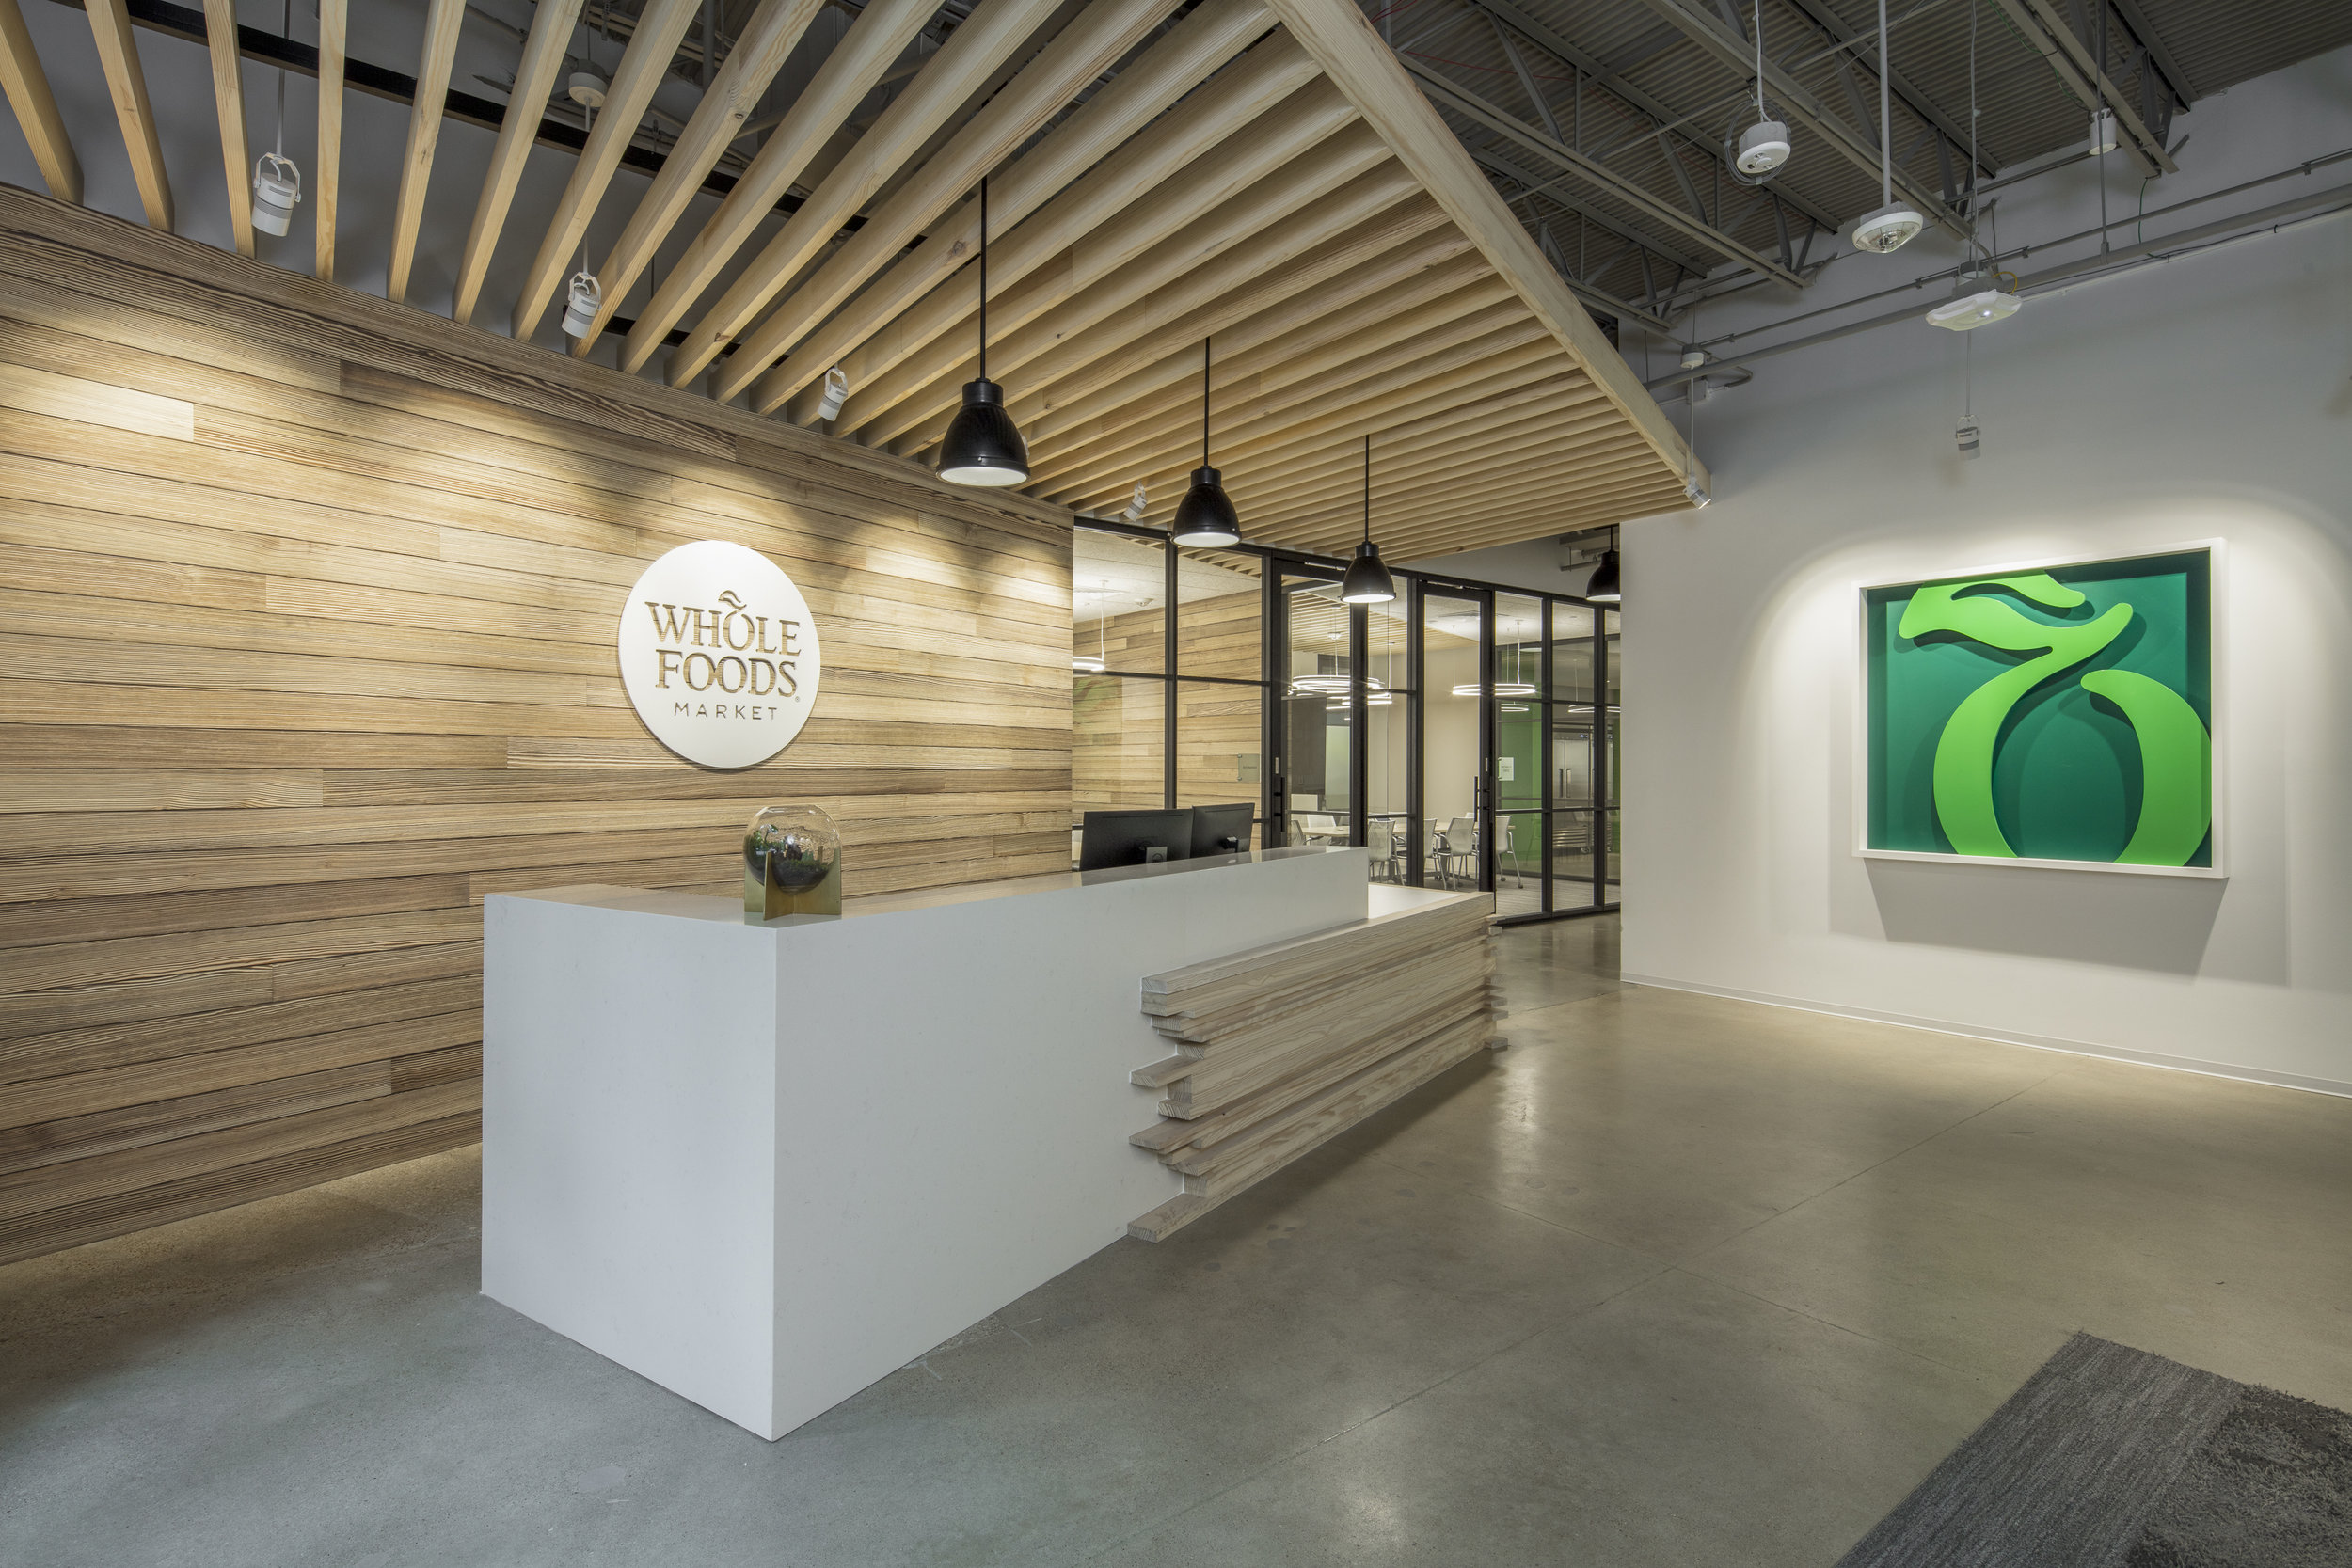 Whole Foods Corporate Office